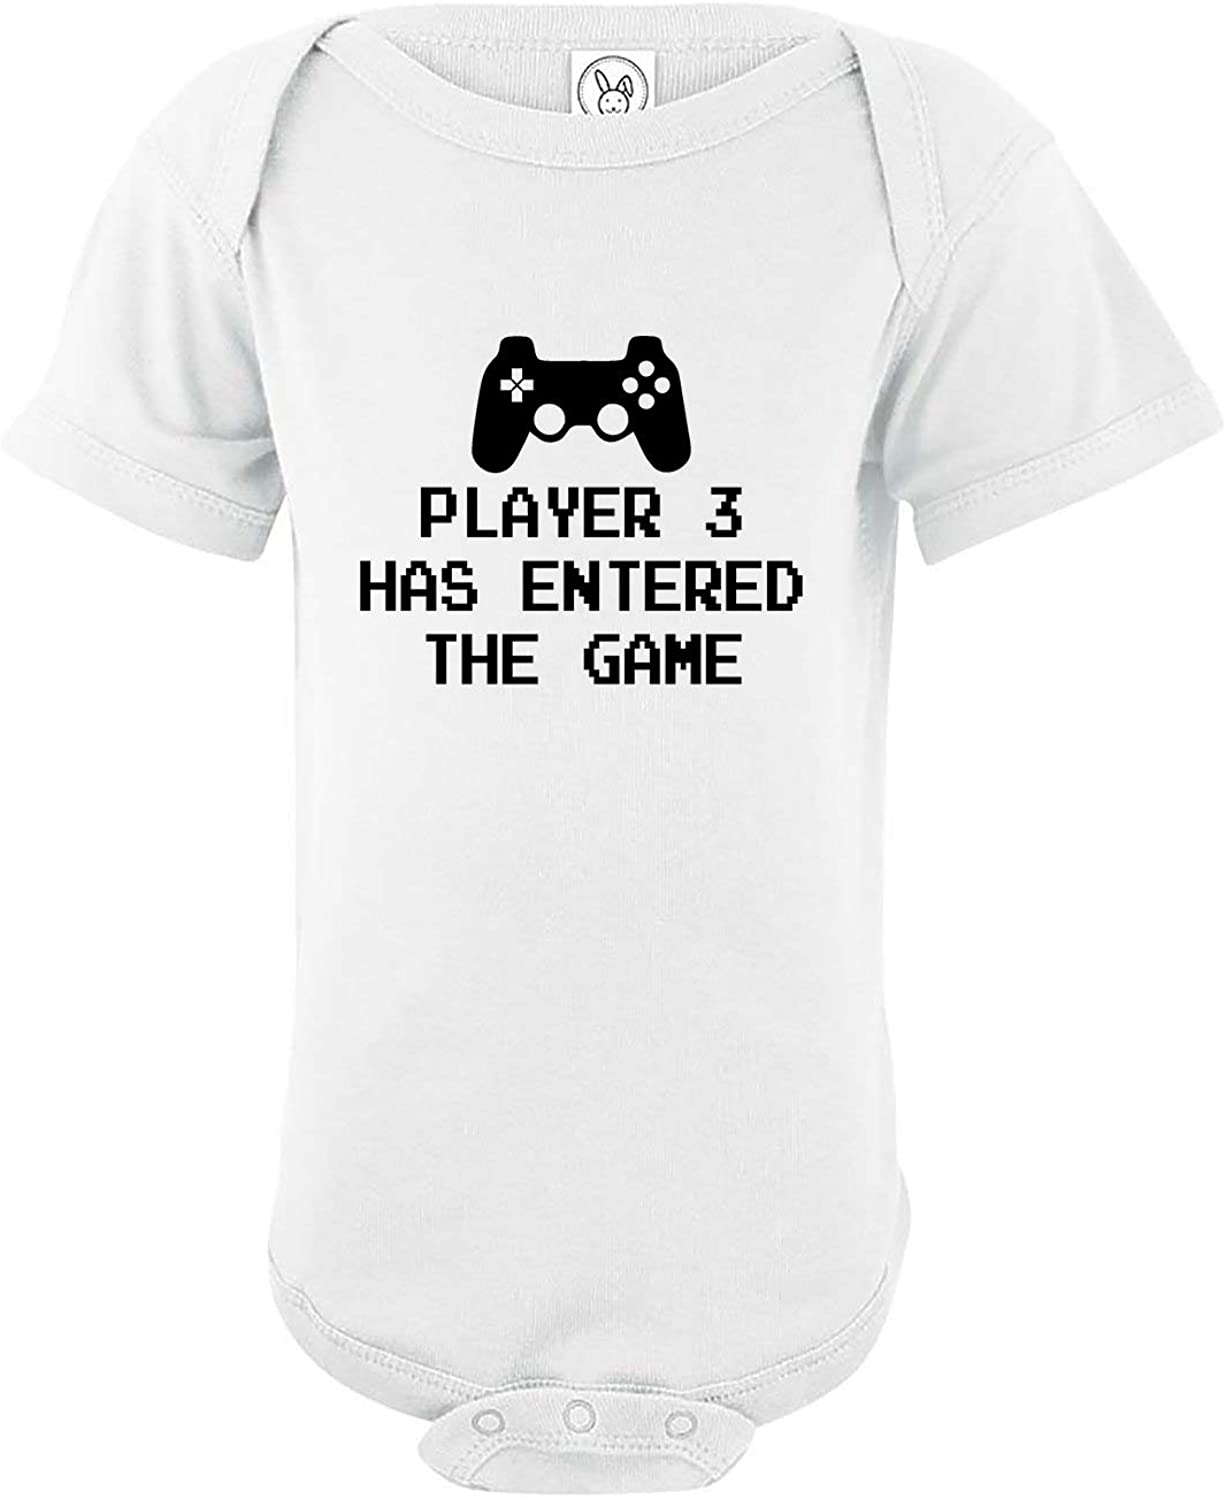 Player 3 Has Entered The Game - Unisex Baby Cotton Bodysuit - Funny Infant One-Piece Romper Outfit